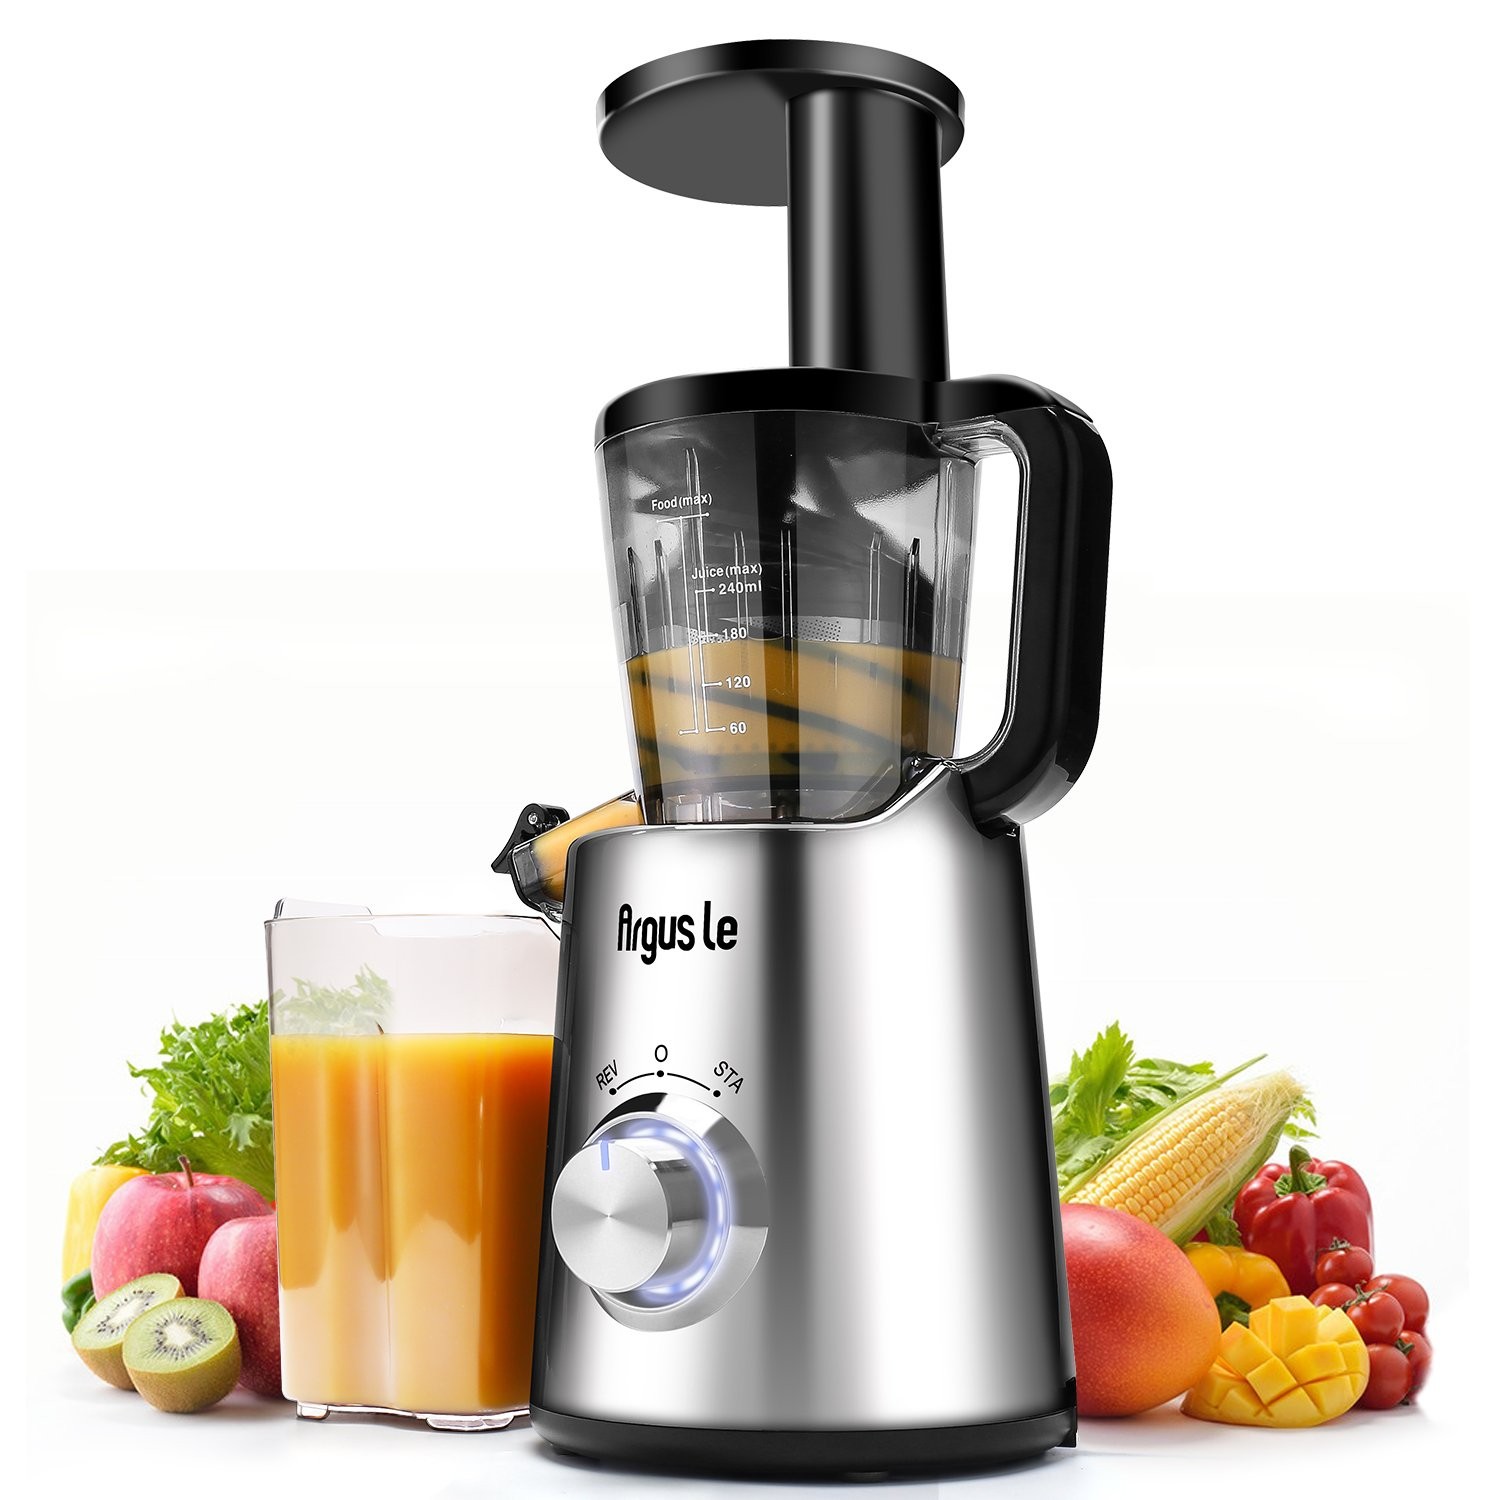 Argus Le Masticating Juicer丨Slow Juice Extractor for Higher Nutrient and Vitamins丨Easy to Clean Cold Press Juicer for All Fruits and Veggies